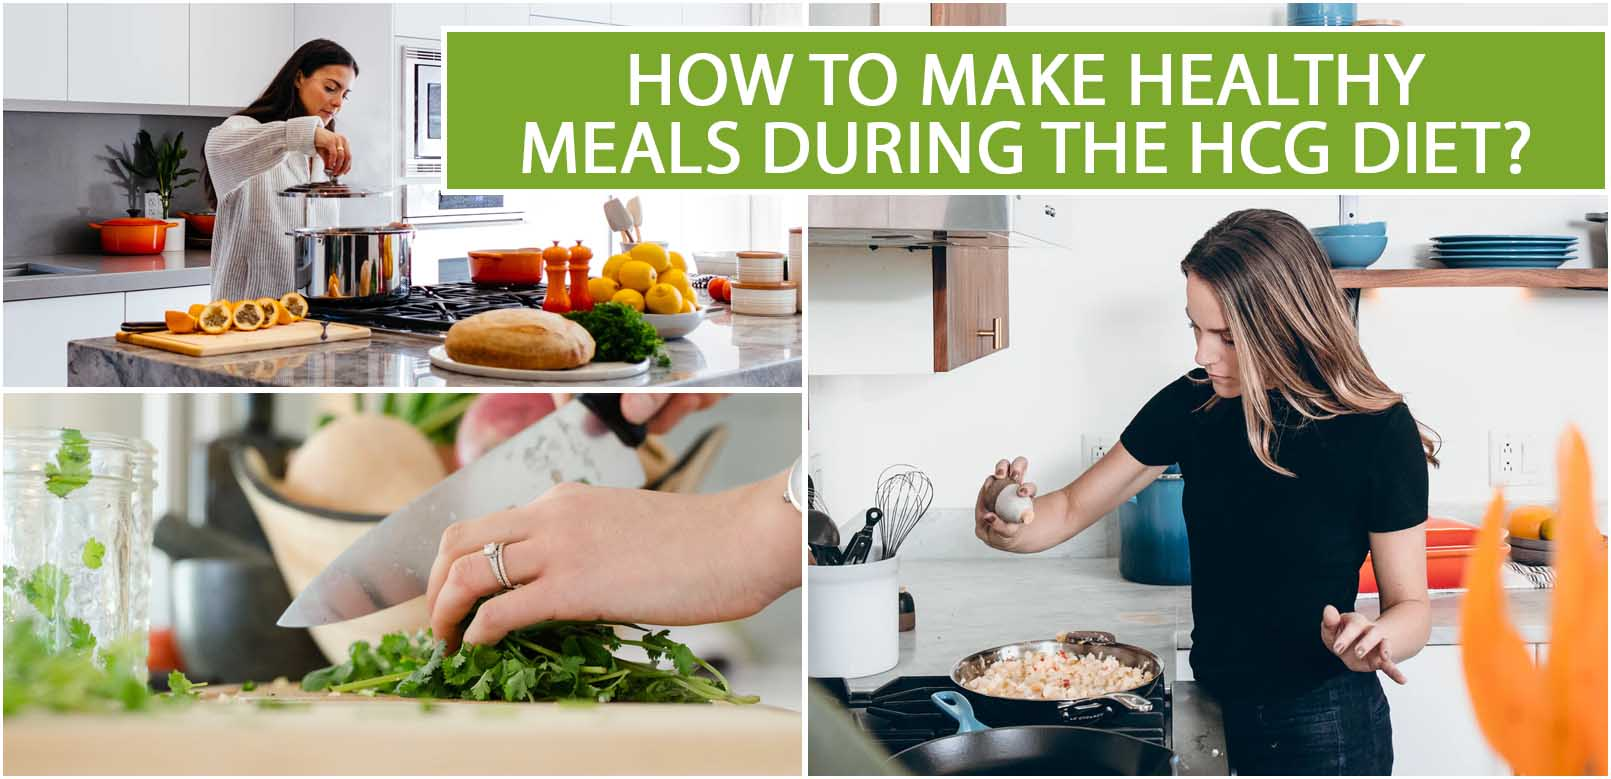 HOW TO MAKE HEALTHY MEALS DURING THE HCG DIET